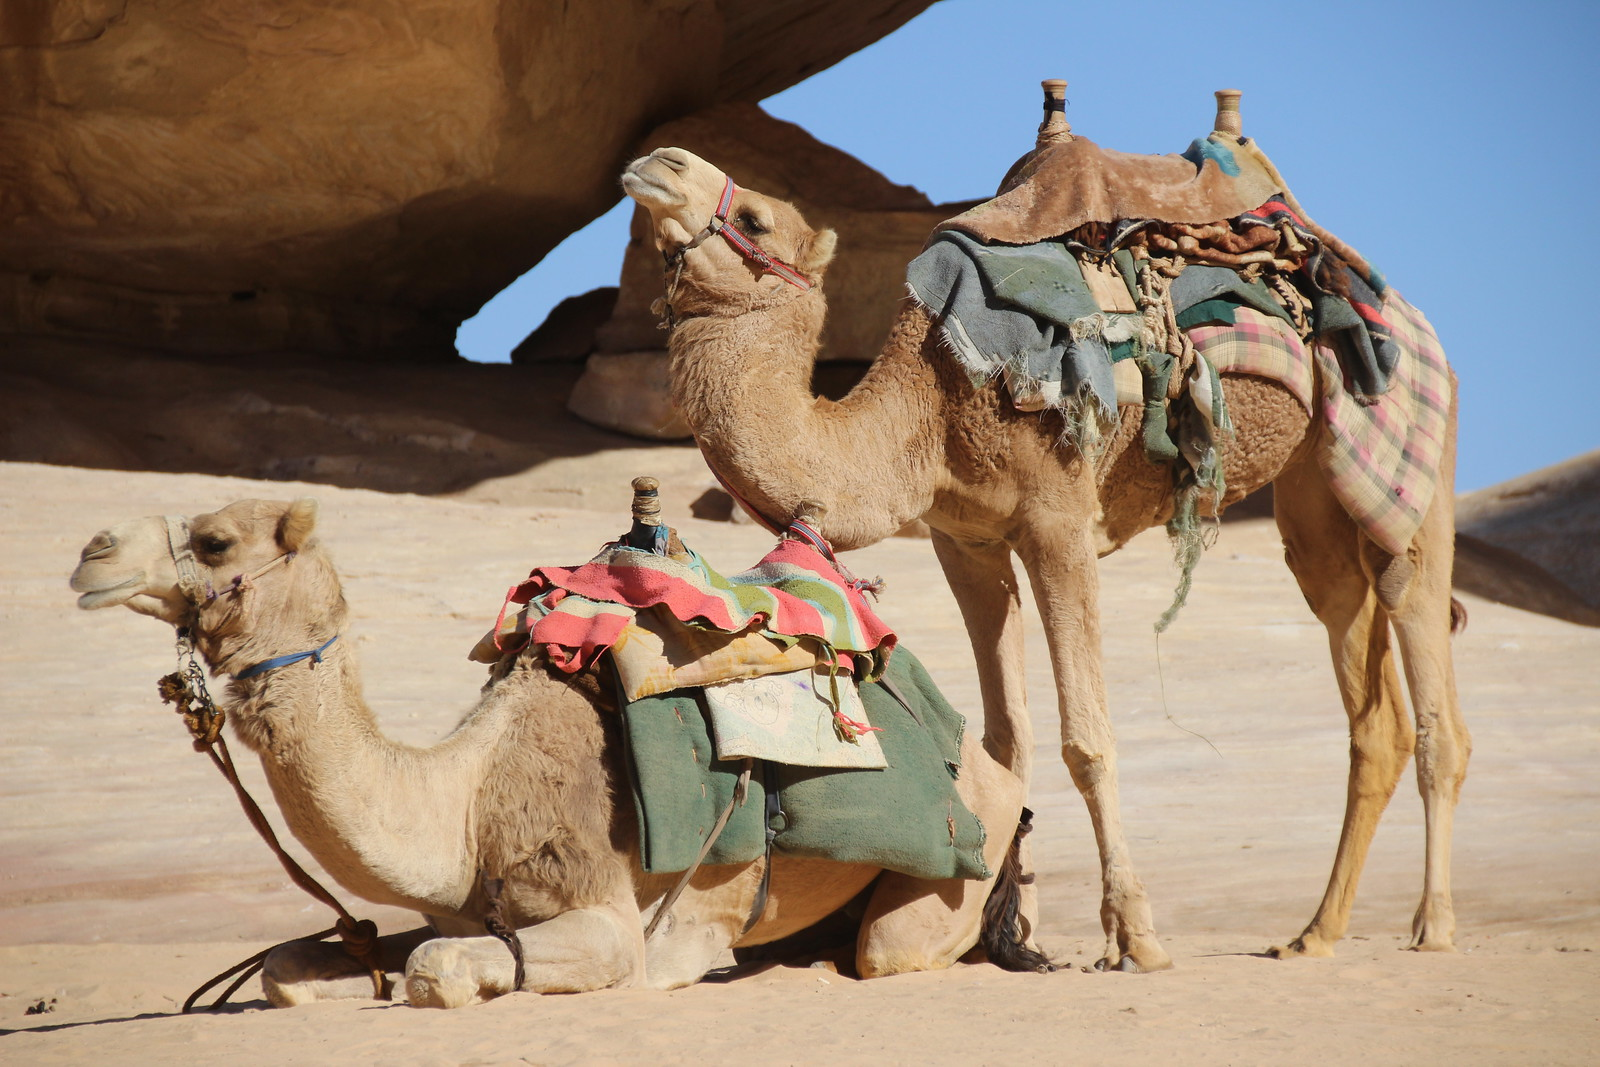 CAMELSPOTTING IN WADI RUM